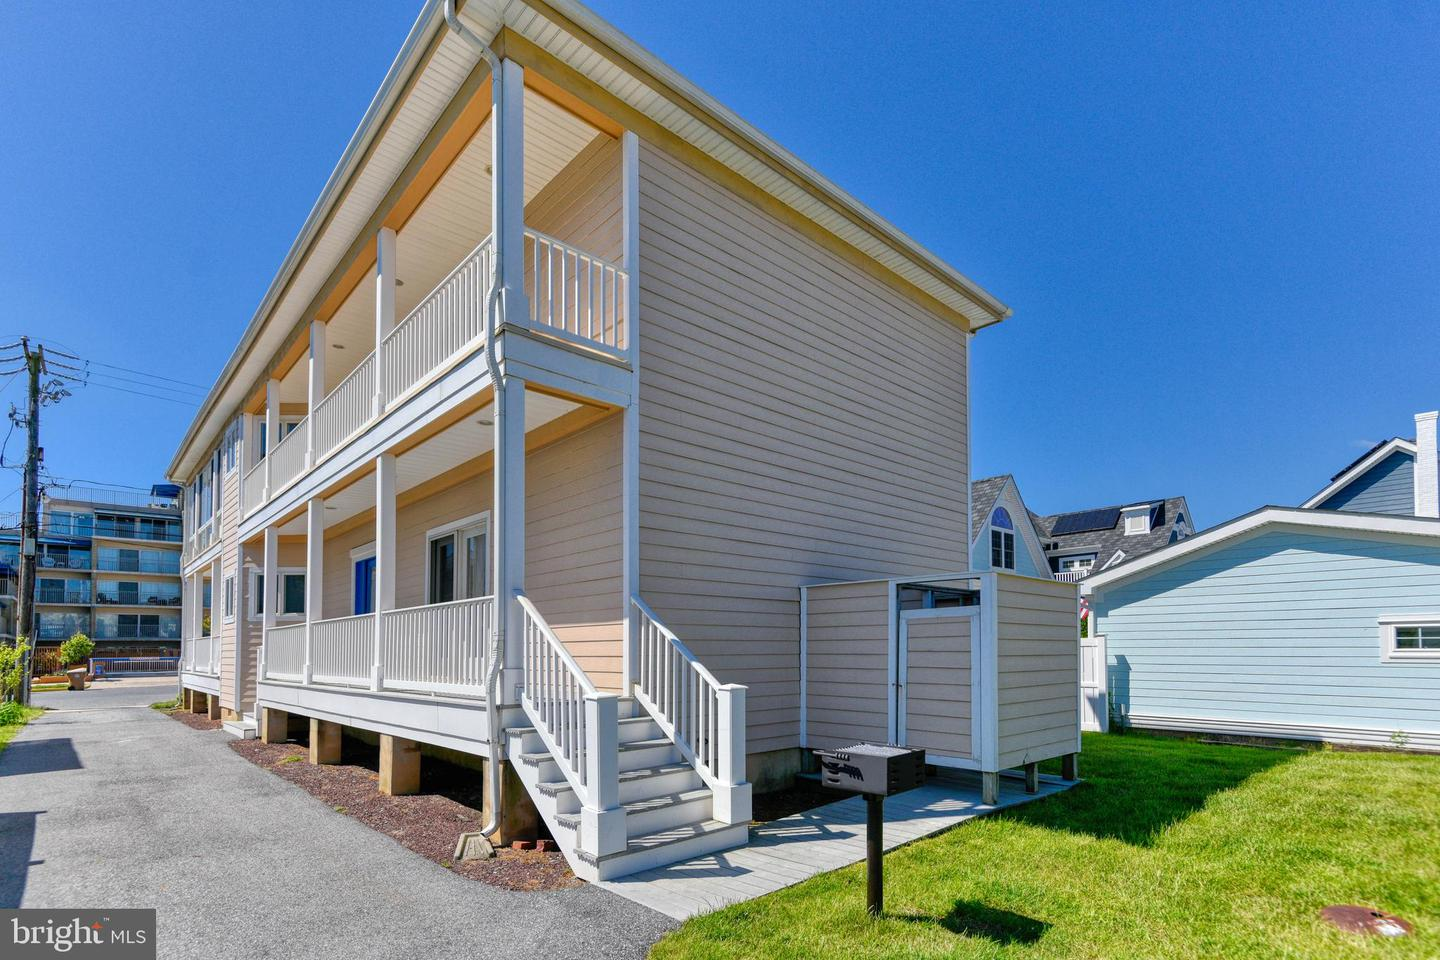 DESU140752-301729566342-2019-05-20-15-11-27 7 Olive Ave | Rehoboth Beach, DE Real Estate For Sale | MLS# Desu140752  - Coldwell Banker Resort Realty